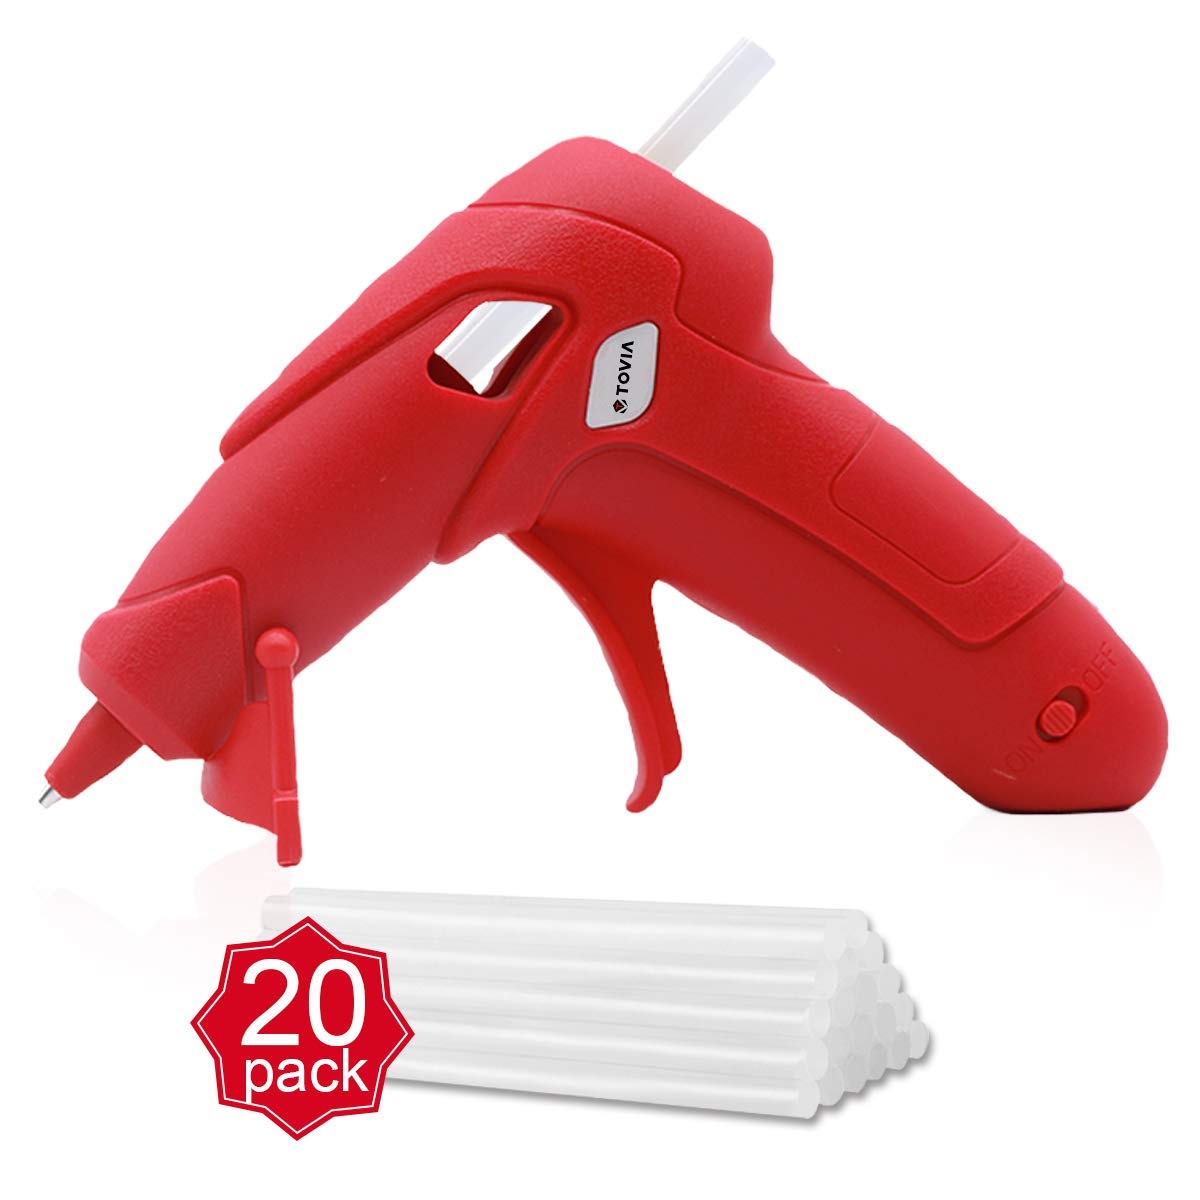 """Battery Powered Hot Glue Gun with 20 Pack-0.27""""x 3.93"""" Glue Sticks,Cordless Low Temp Melt Gun with Charger and Stand,Wireless Mini Heat Gun for Kids,Arts,Crafts,Decoration (Red)"""